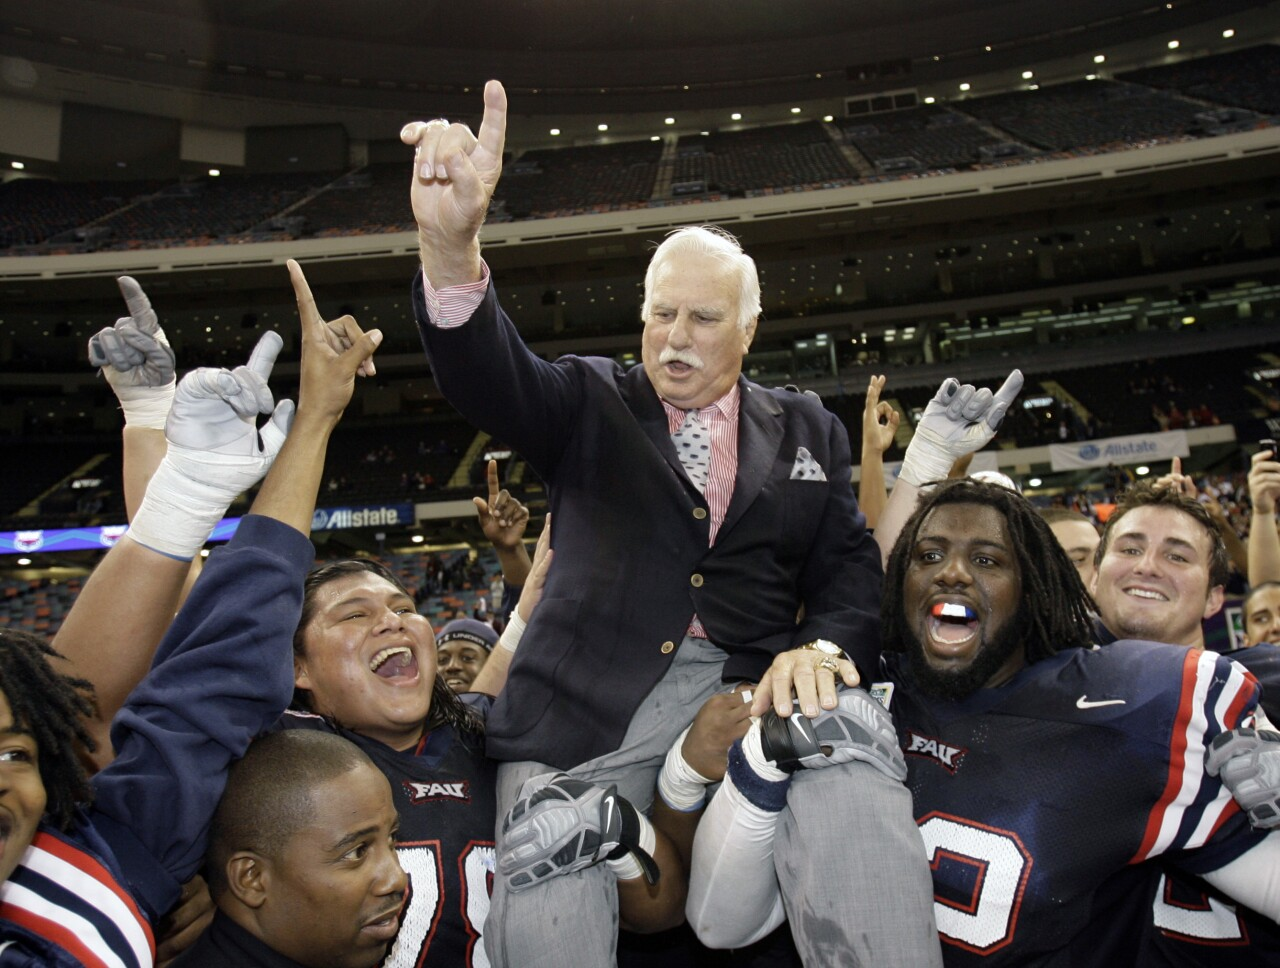 Howard Schnellenberger on FAU players shoulders 2007 New Orleans Bowl